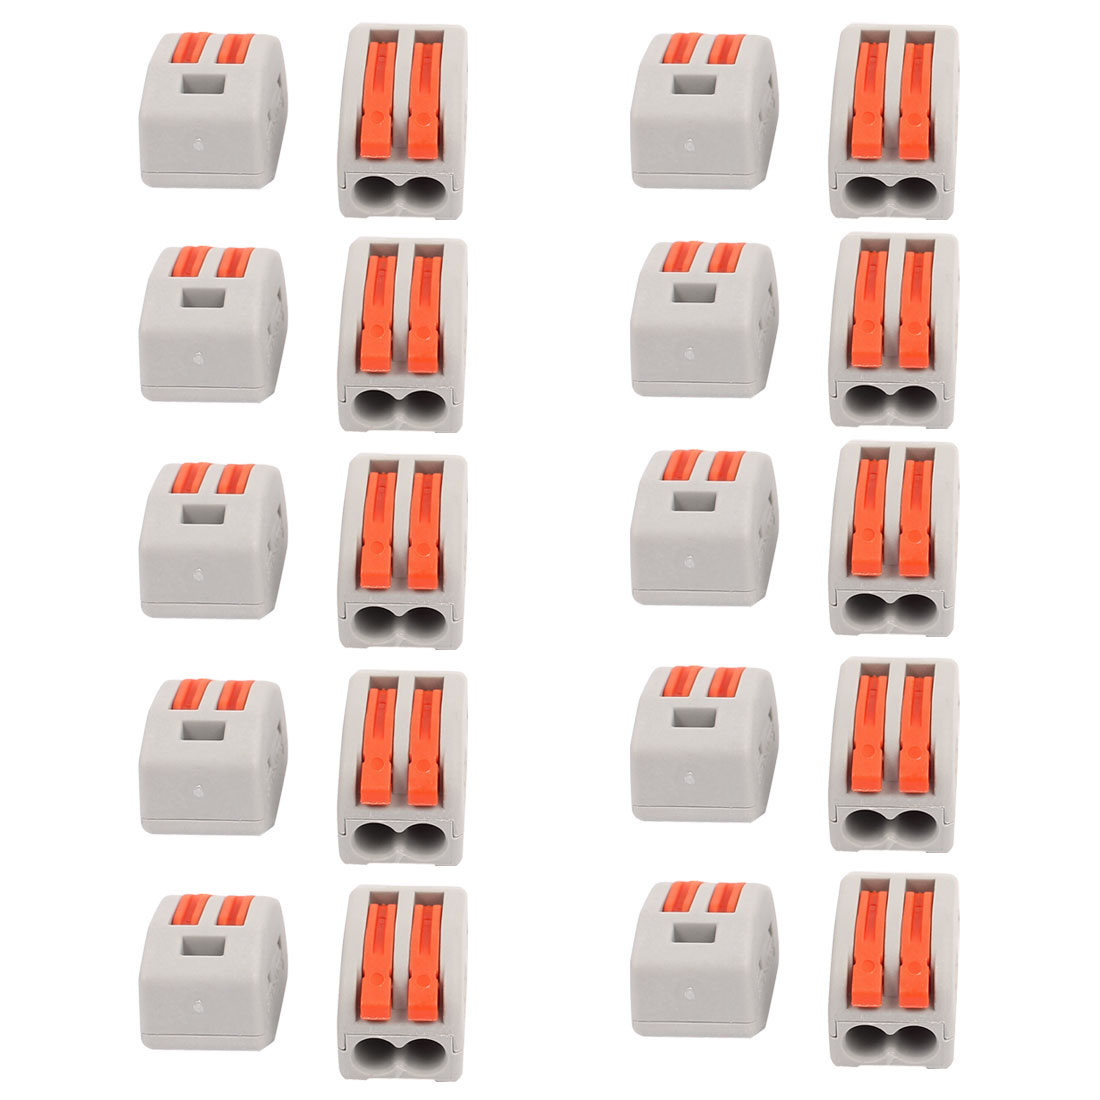 20 Pcs AC 250V 20A Lever Lock Clamp 2 Pins 2 Ports Terminal Block 0.75-2.5mm2 Orange